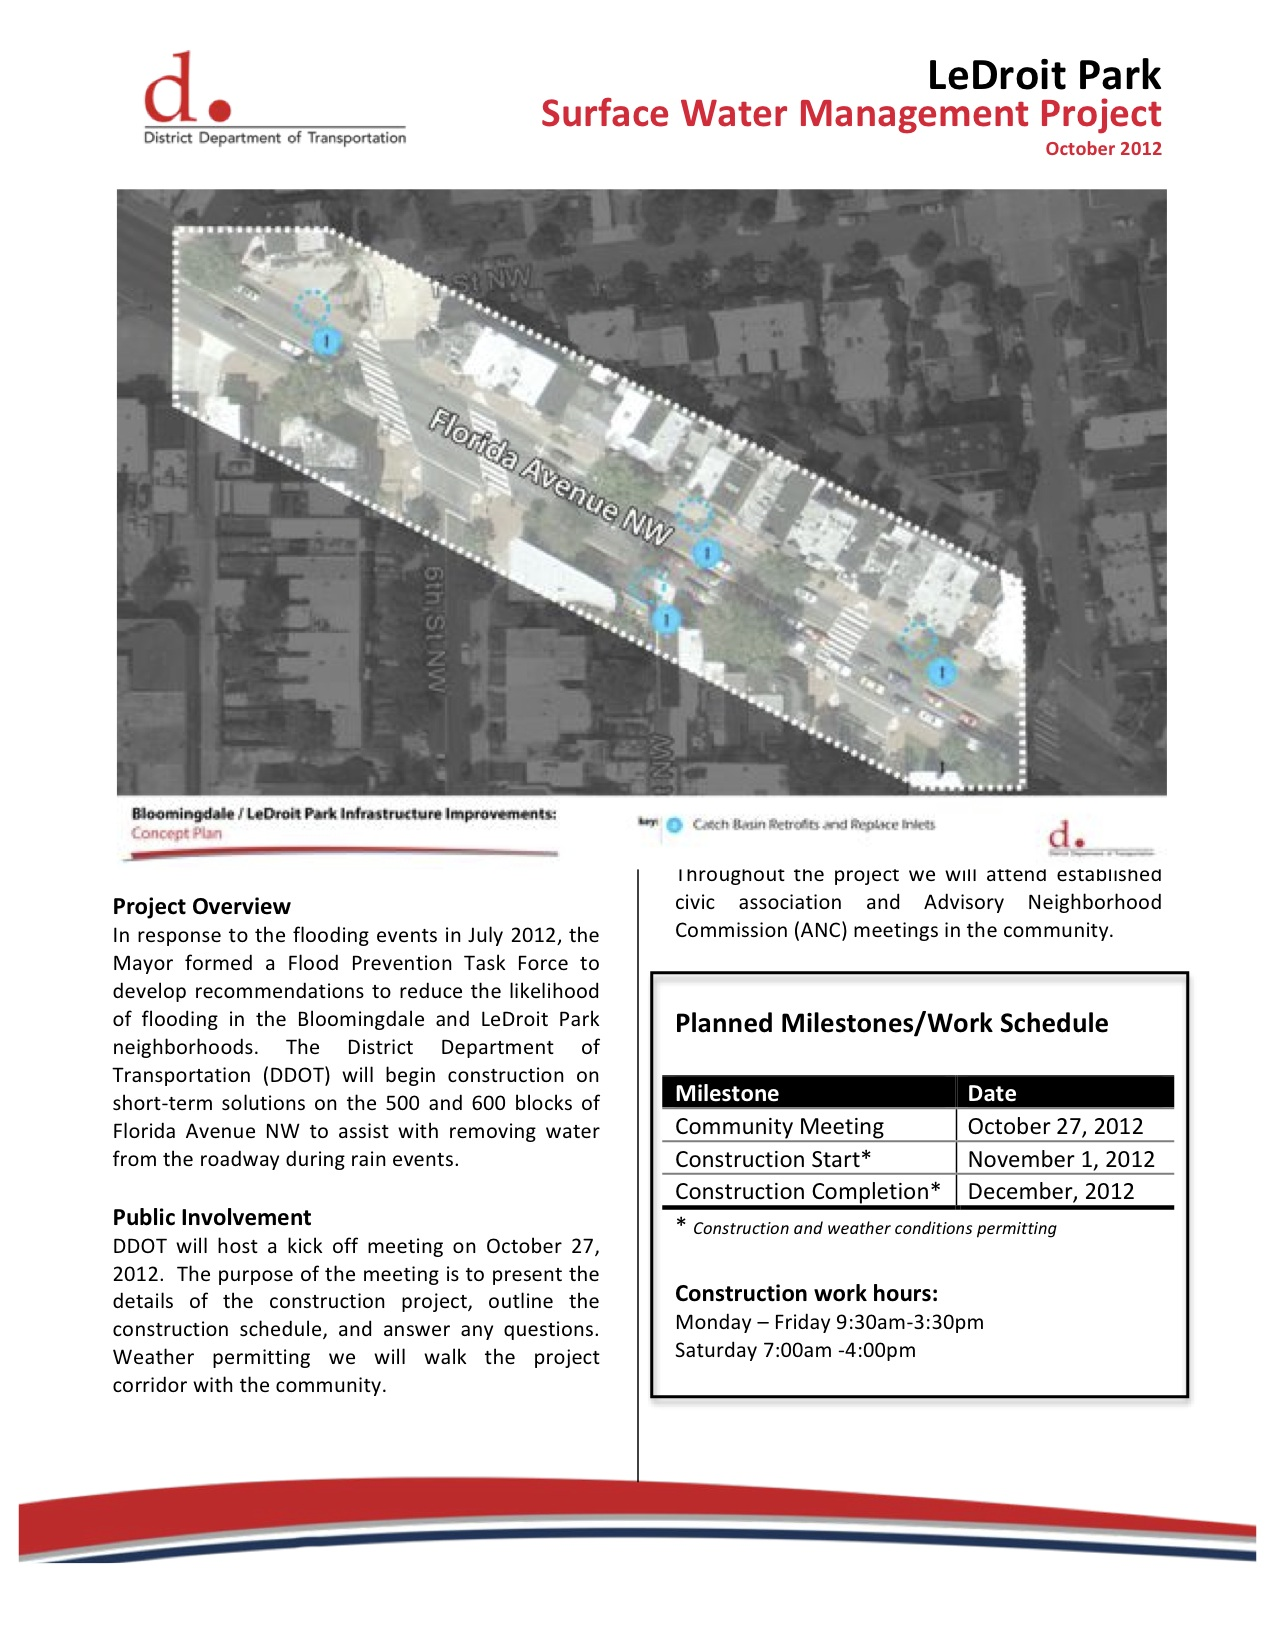 Temporary Lane Closures on the 500 and 600 Blocks of Florida Avenue NW